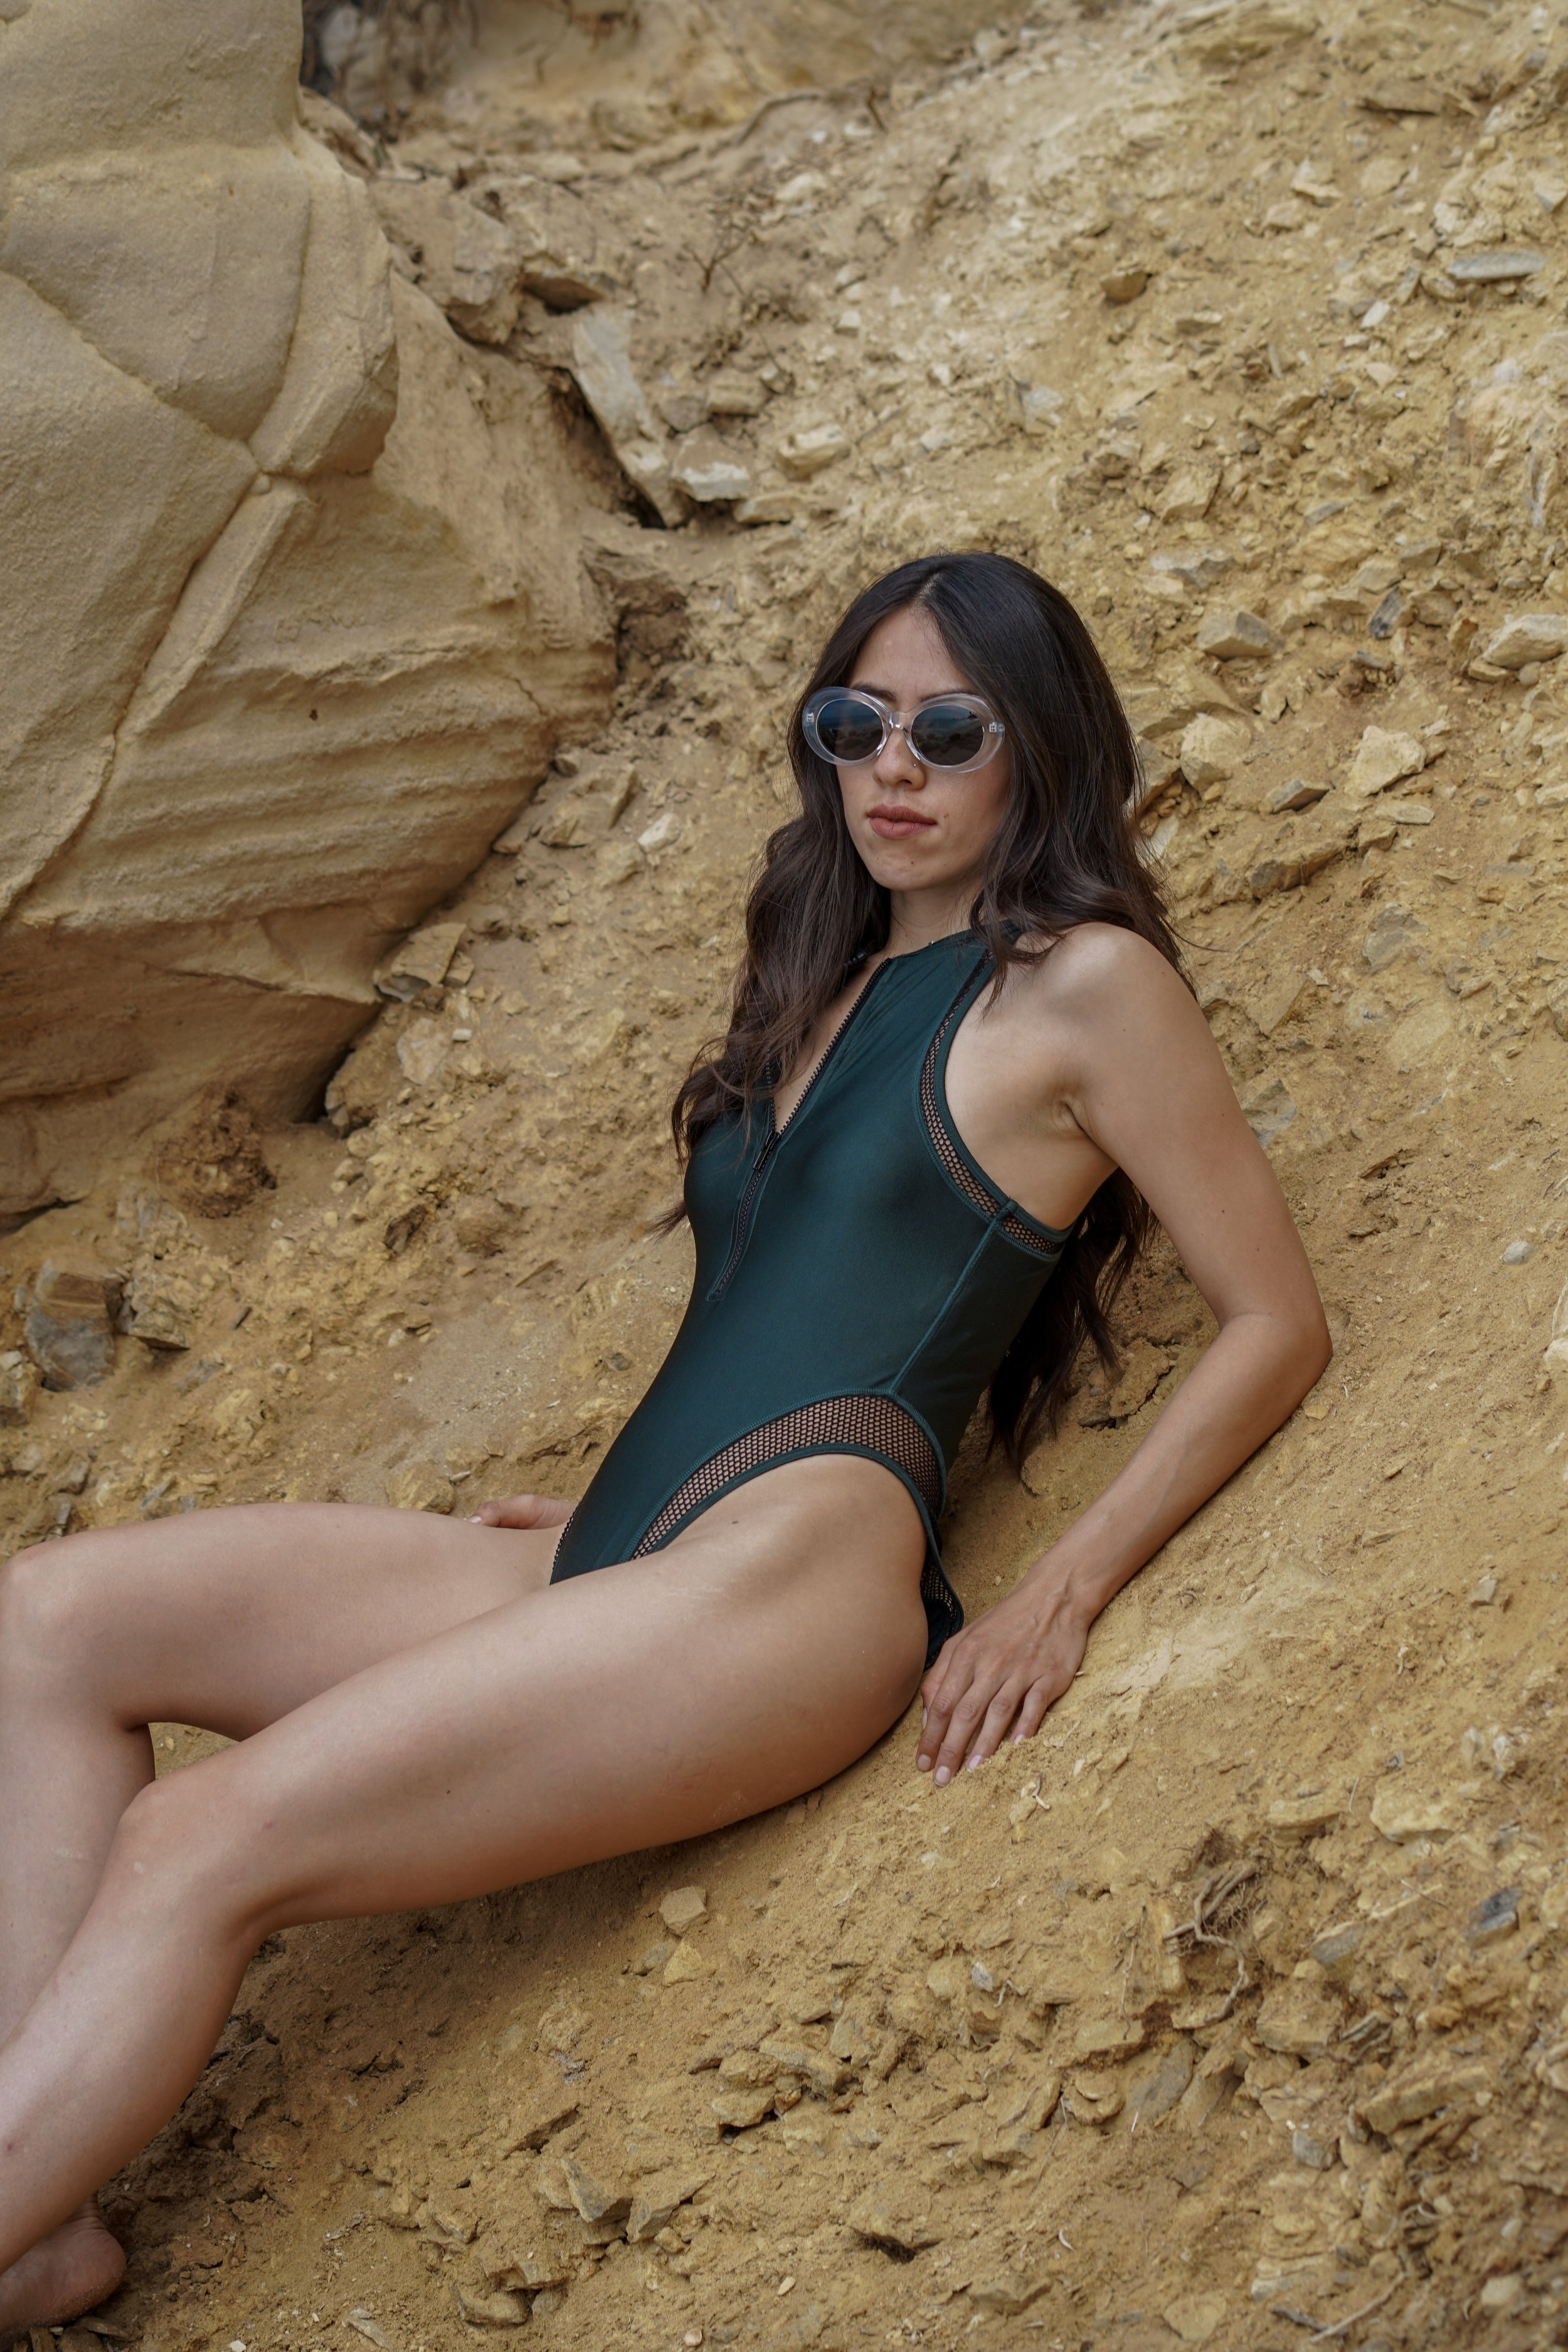 Green One Piece Bathing Suit